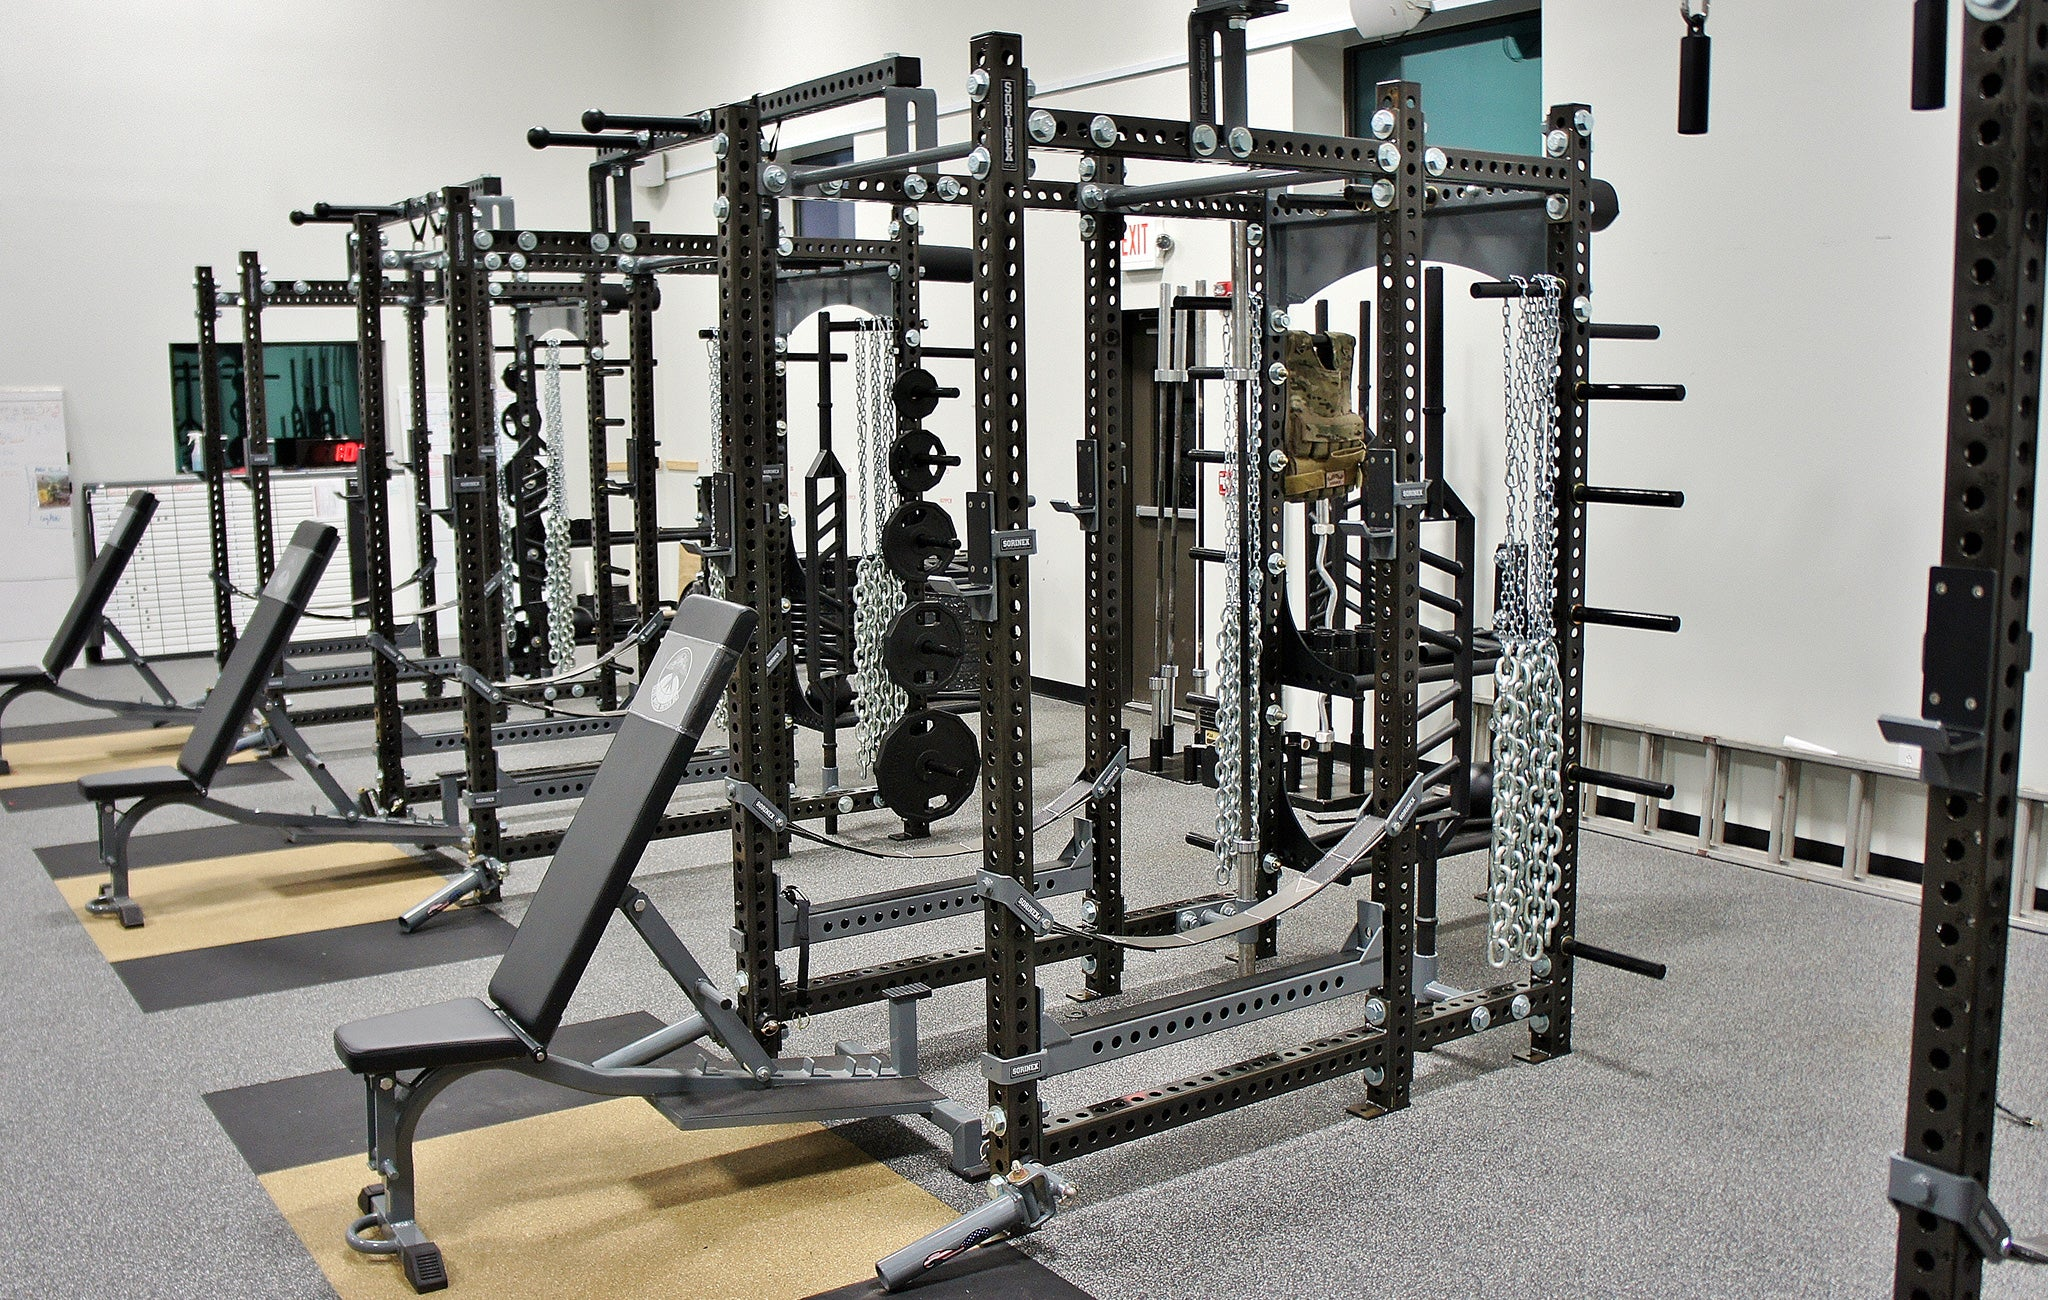 AFSOC Pope AAF Military Weight room